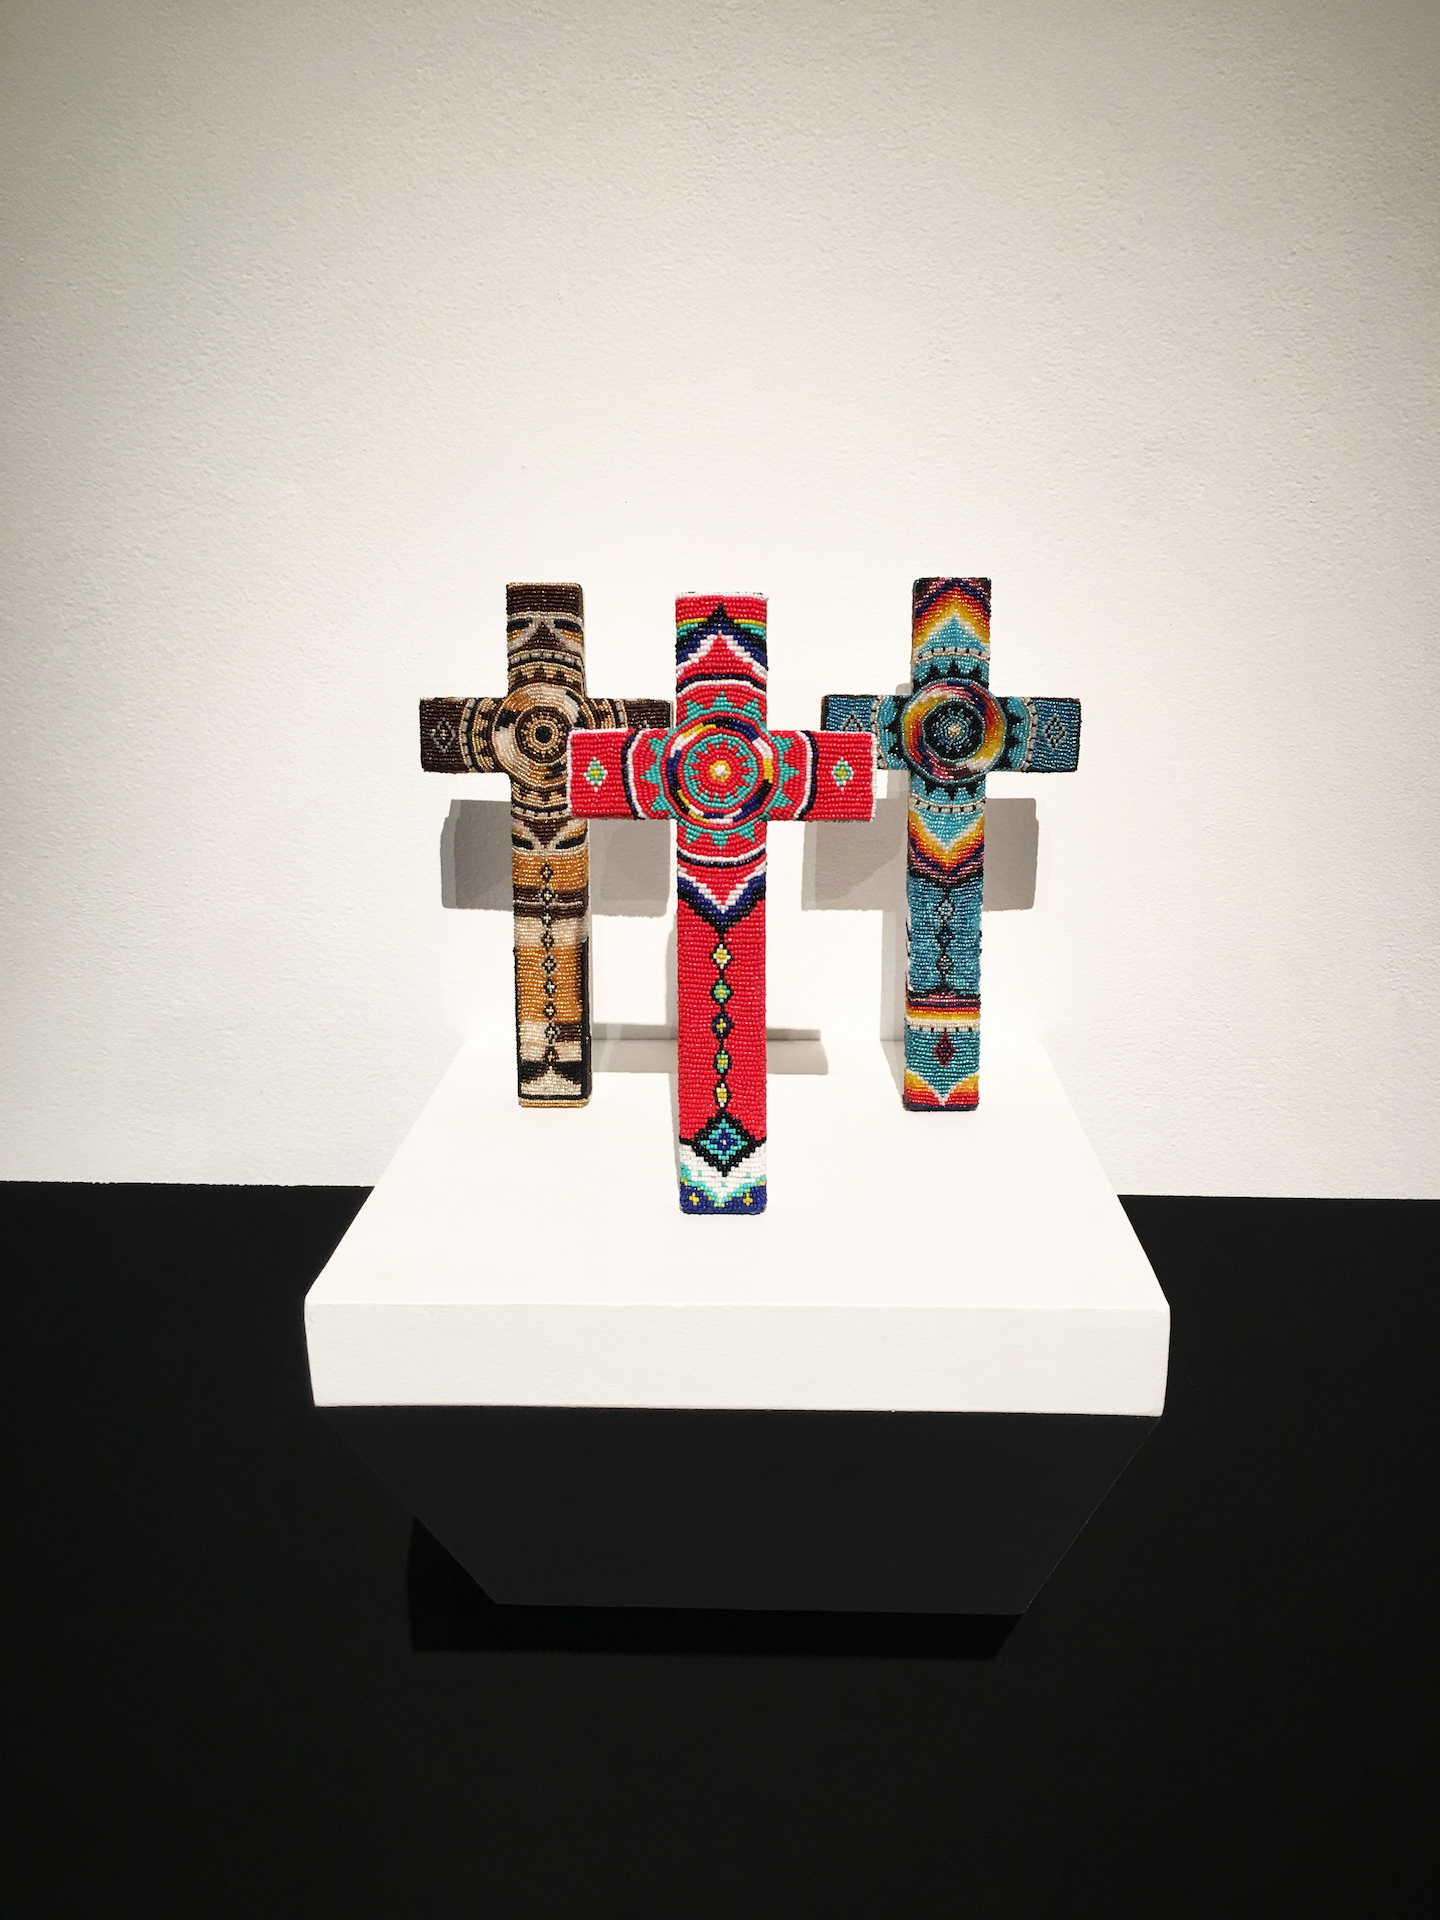 Wood, Glass Beads, and Glue. 1 ft x 6 inch (each cross). 2019.